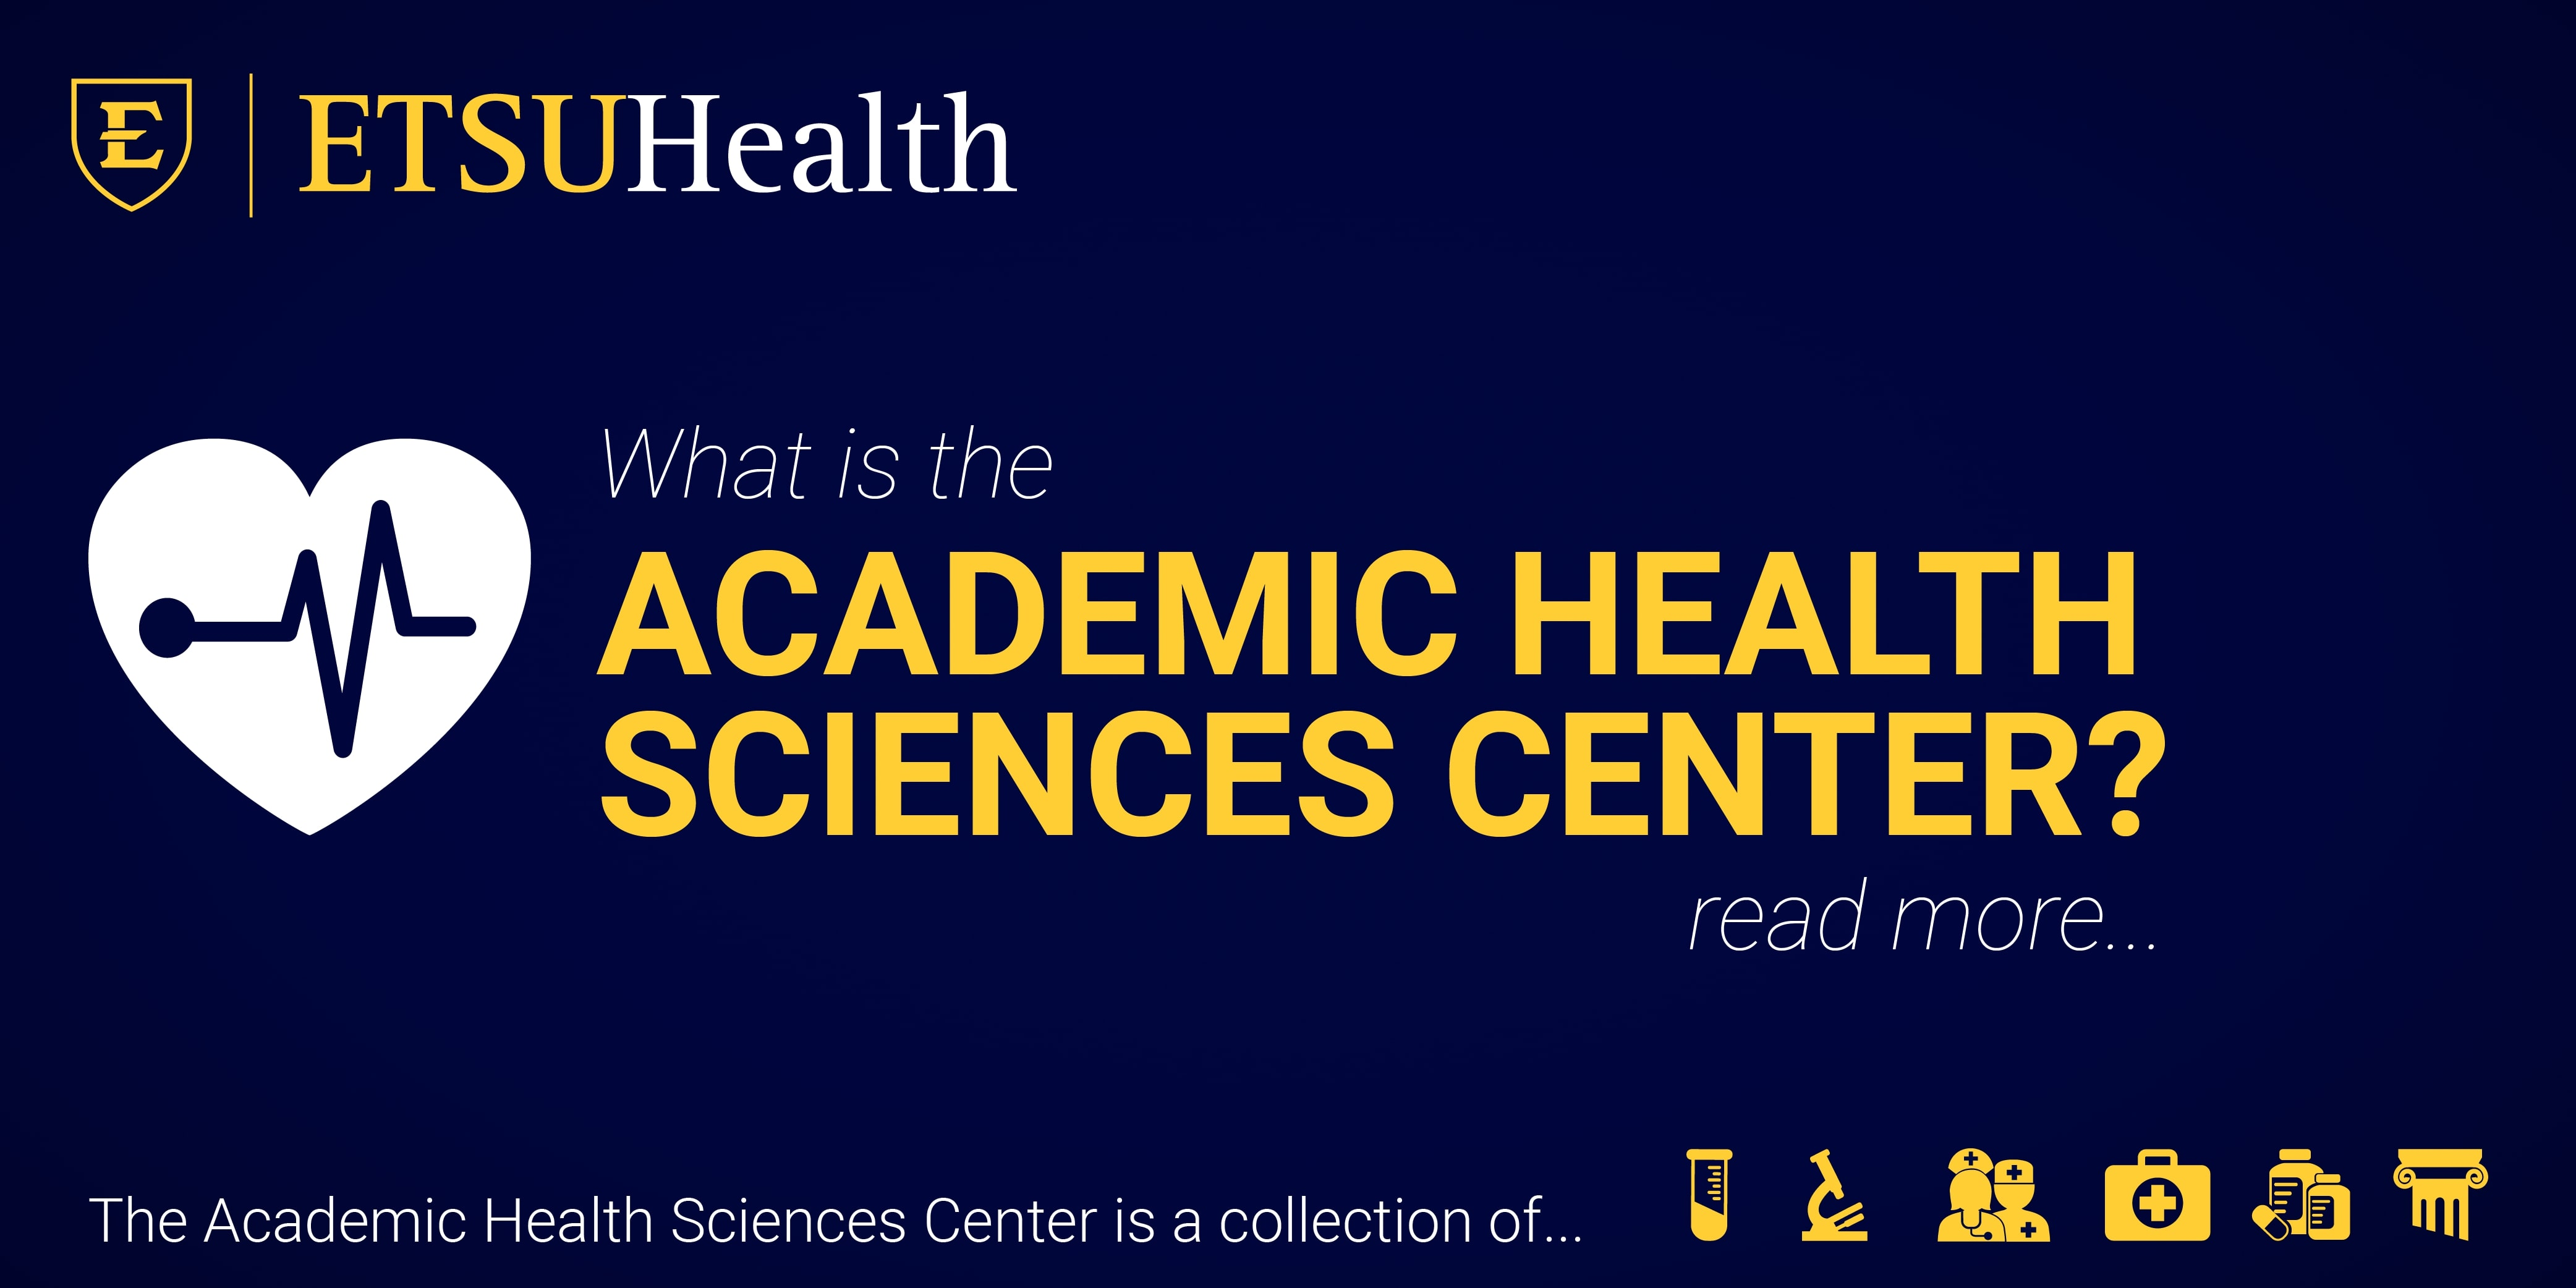 What is the Academic Health Sciences Center?